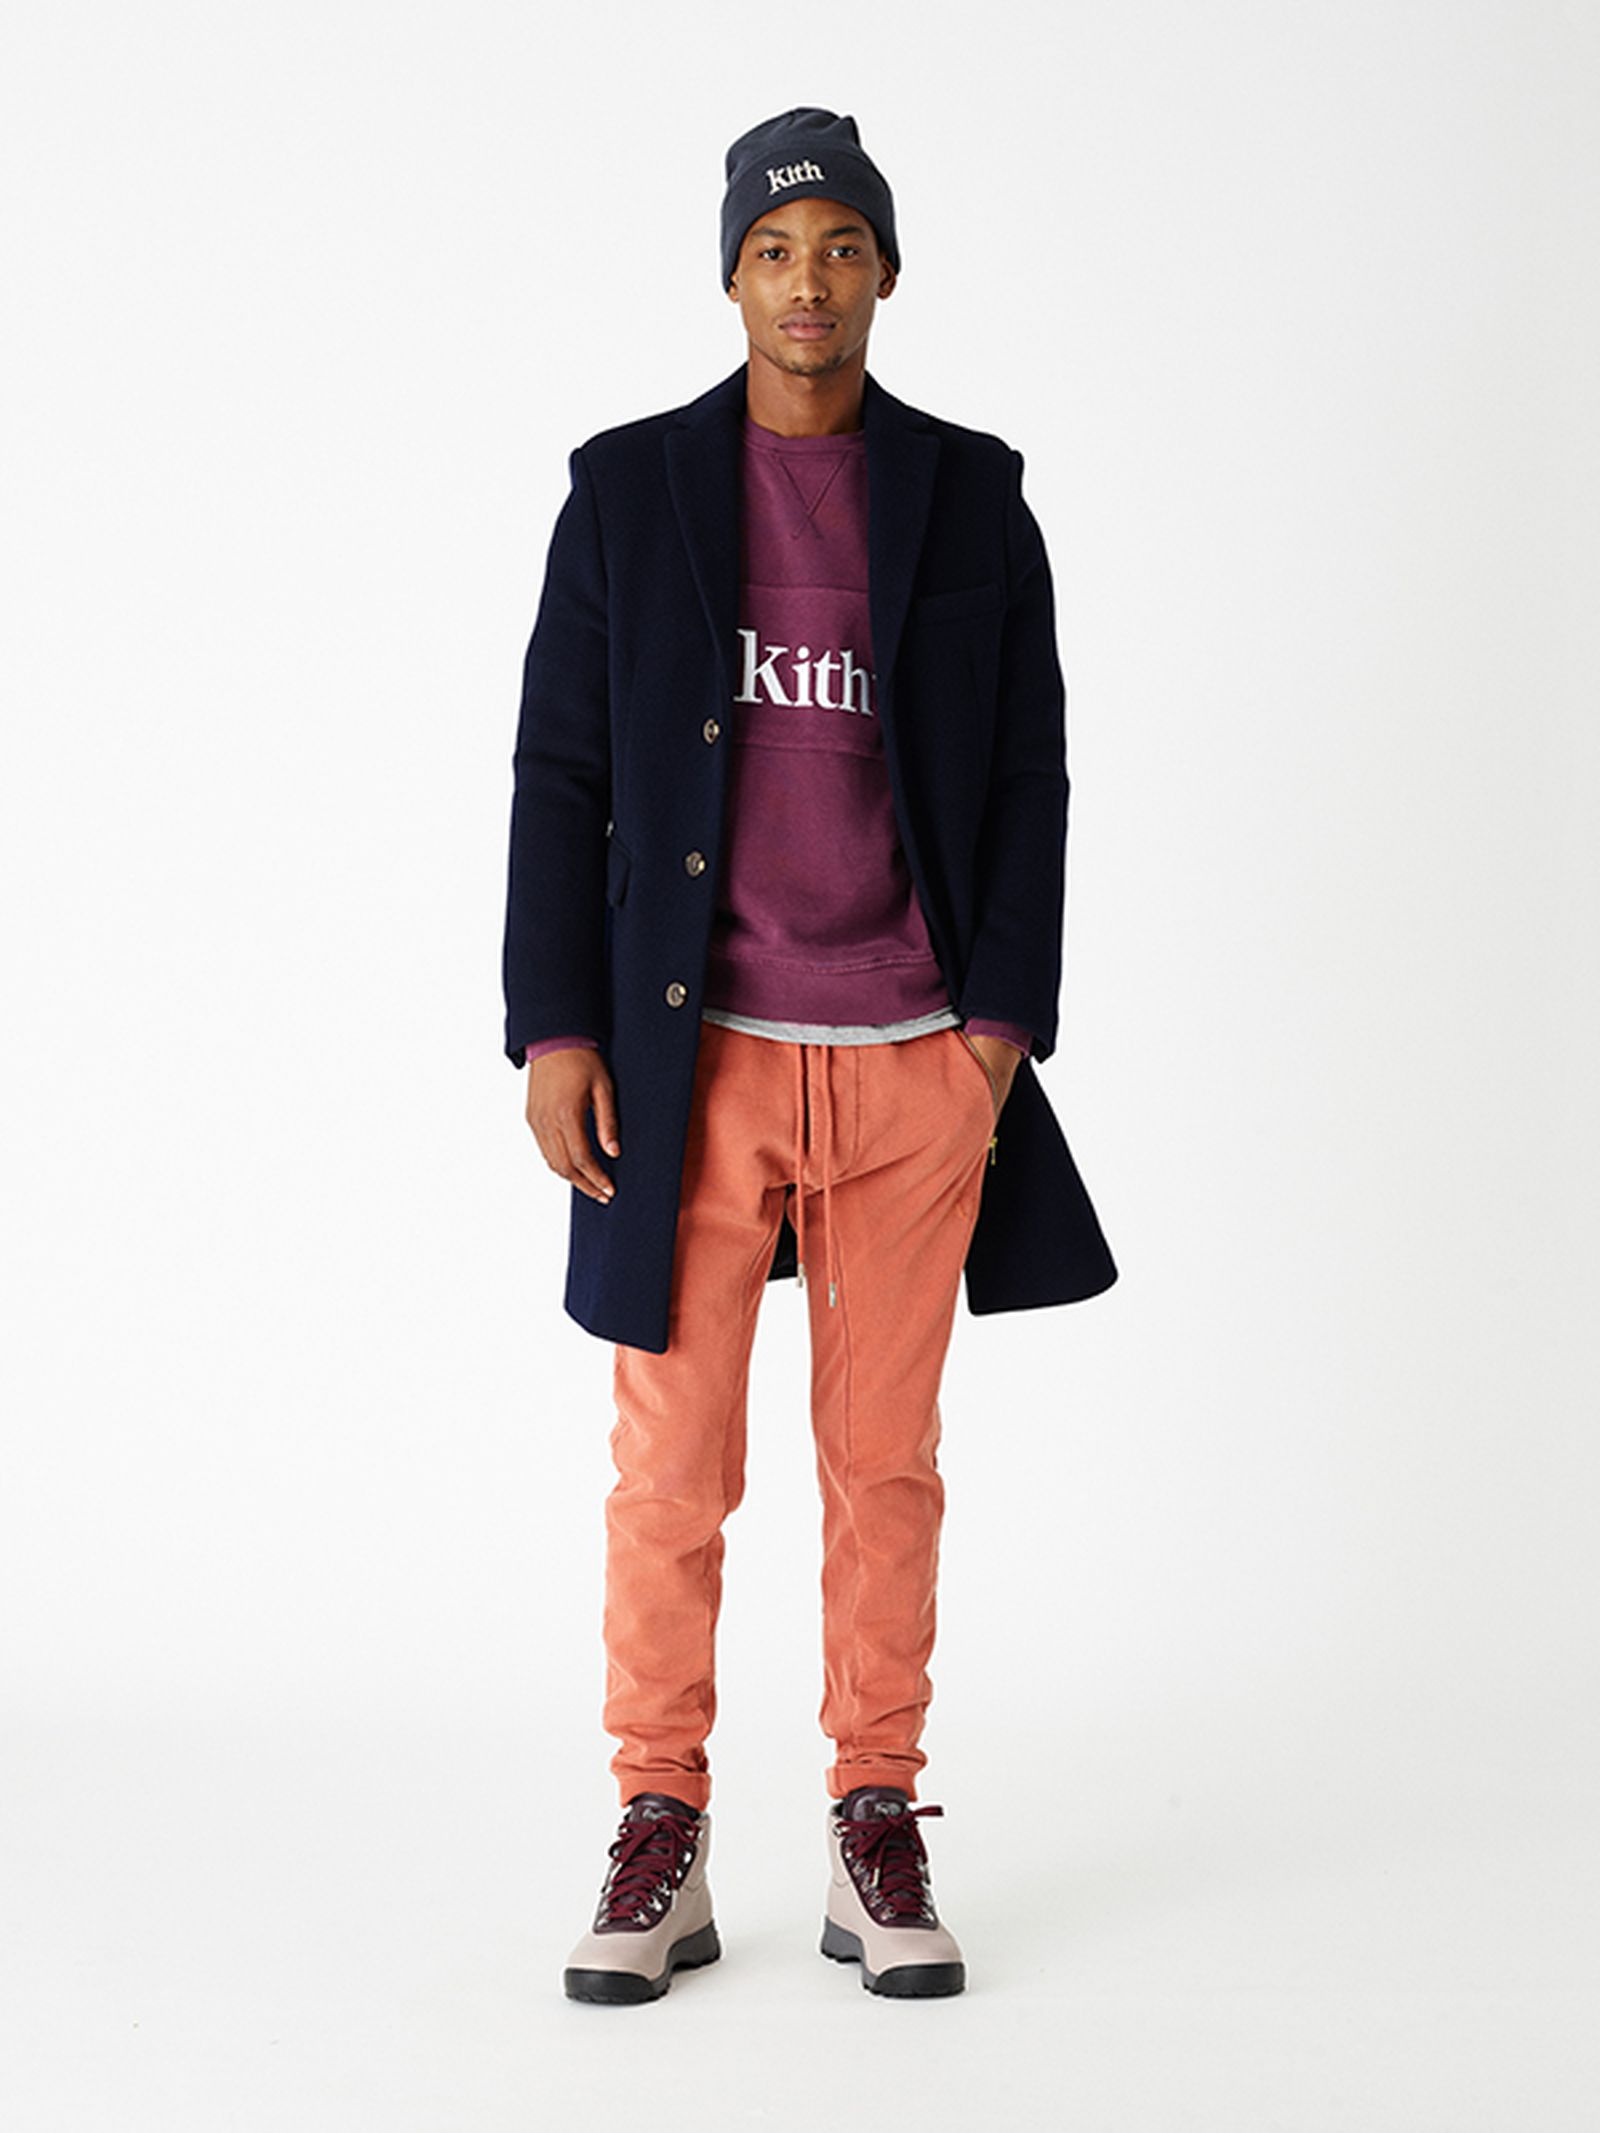 kith fall 2018 delivery 2 1 ronnie fieg